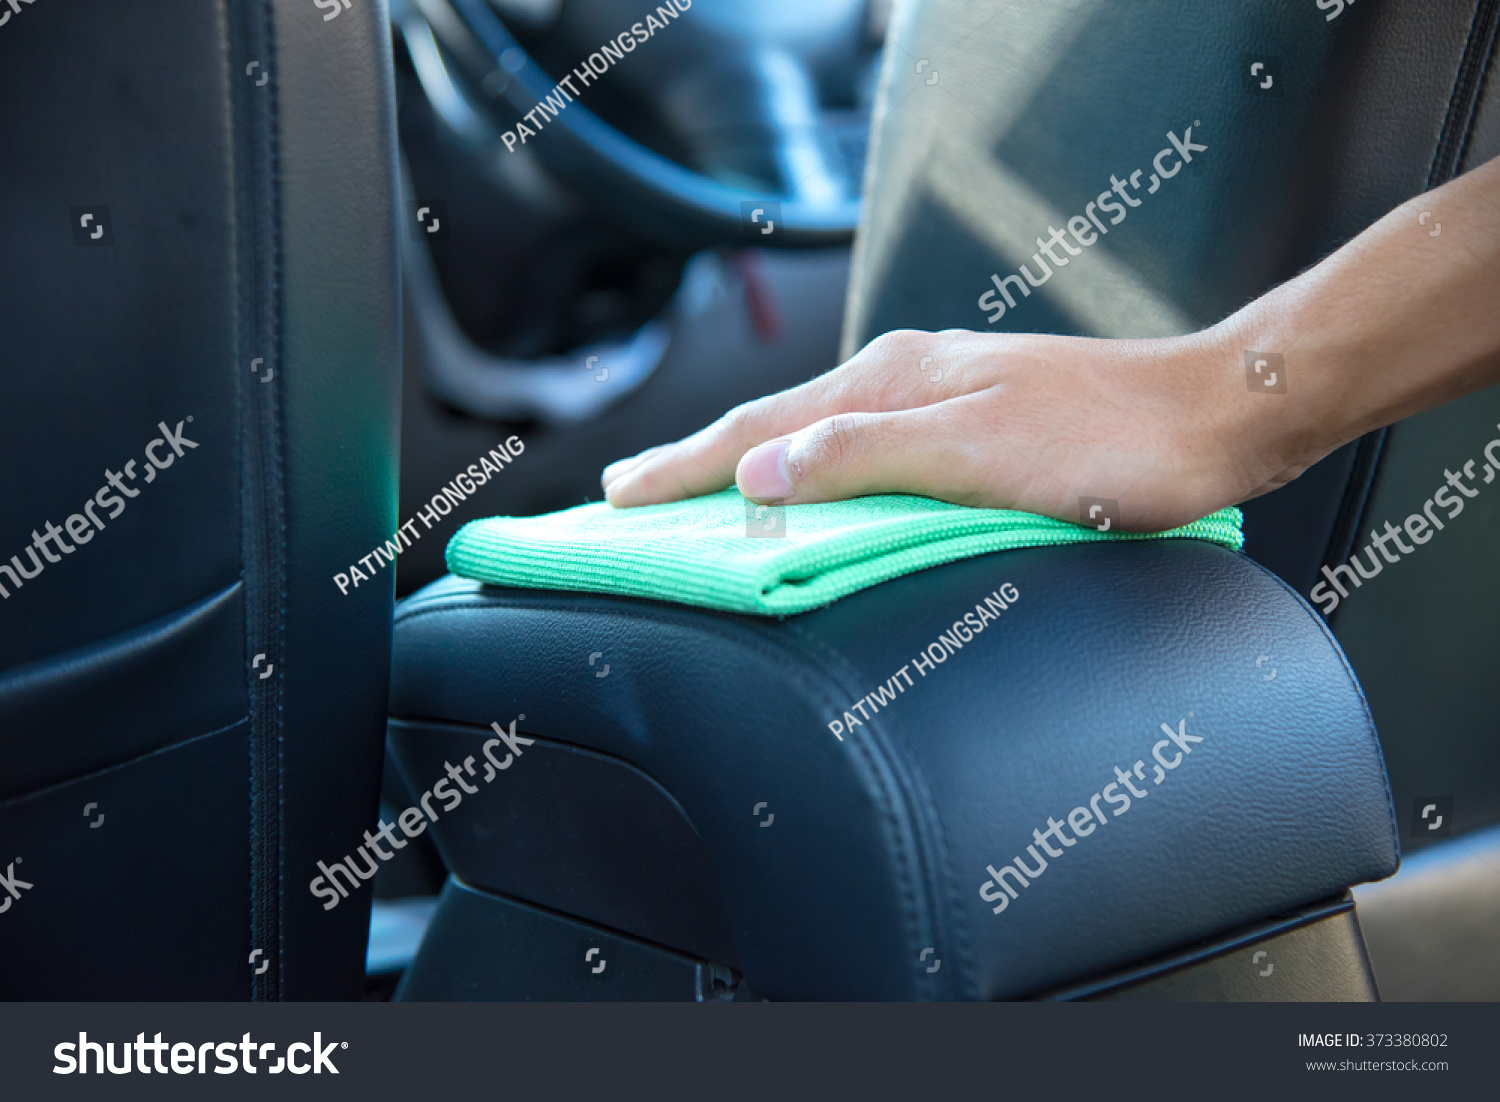 hand cleaning the car interior with green microfiber cloth stock photo 373380802 shutterstock. Black Bedroom Furniture Sets. Home Design Ideas